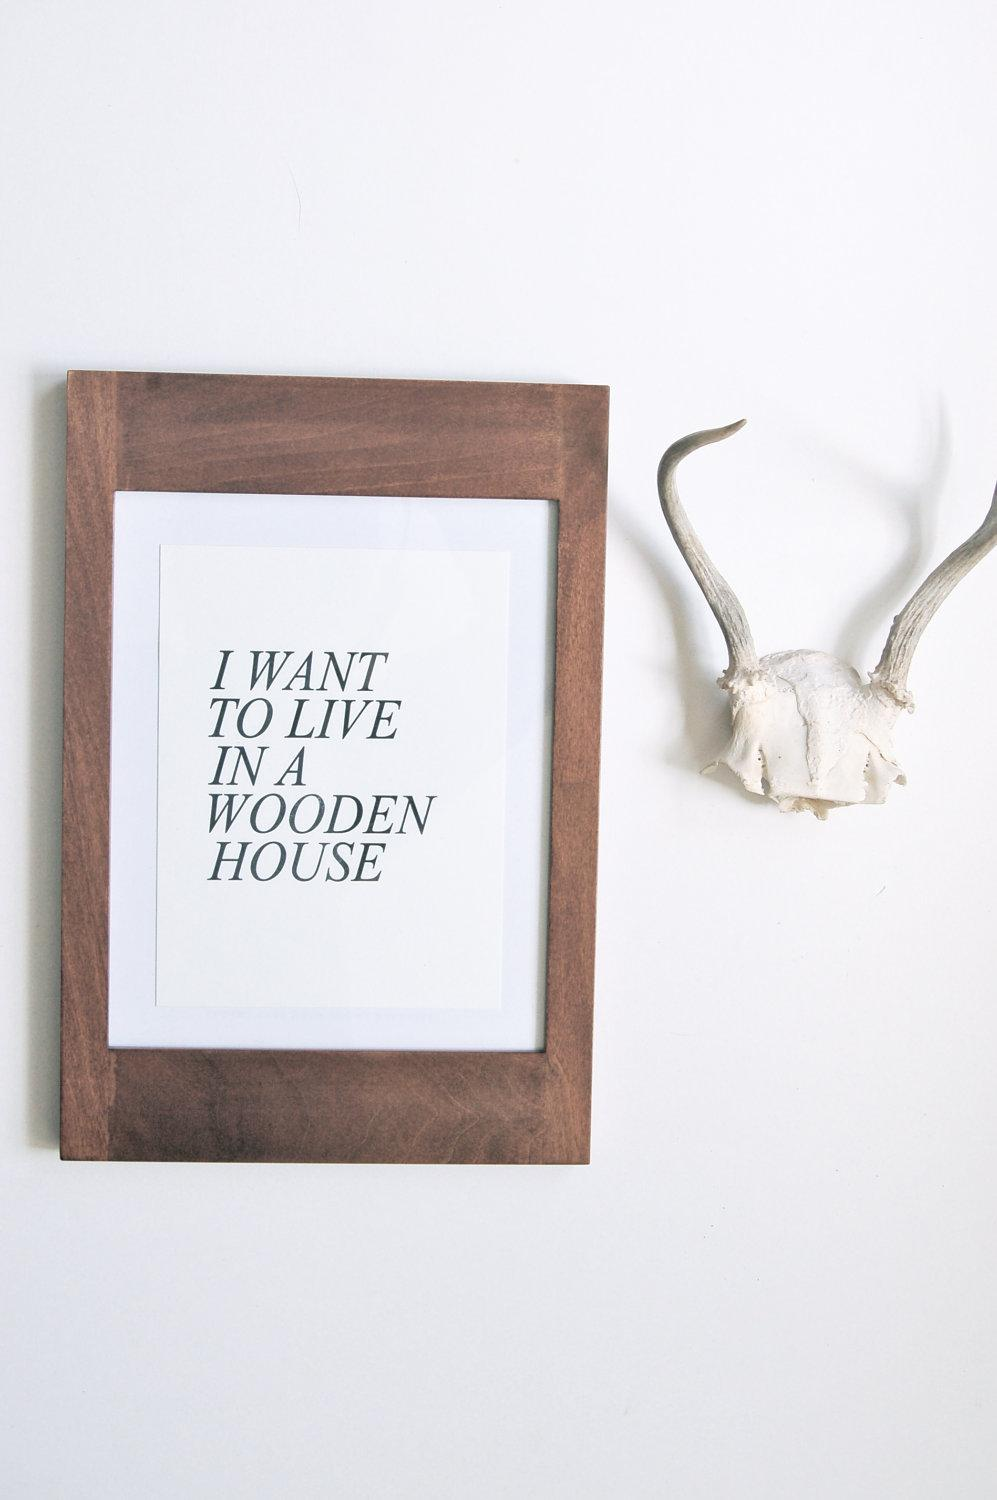 Wooden House Letterpress Print by inhauspress on Etsy